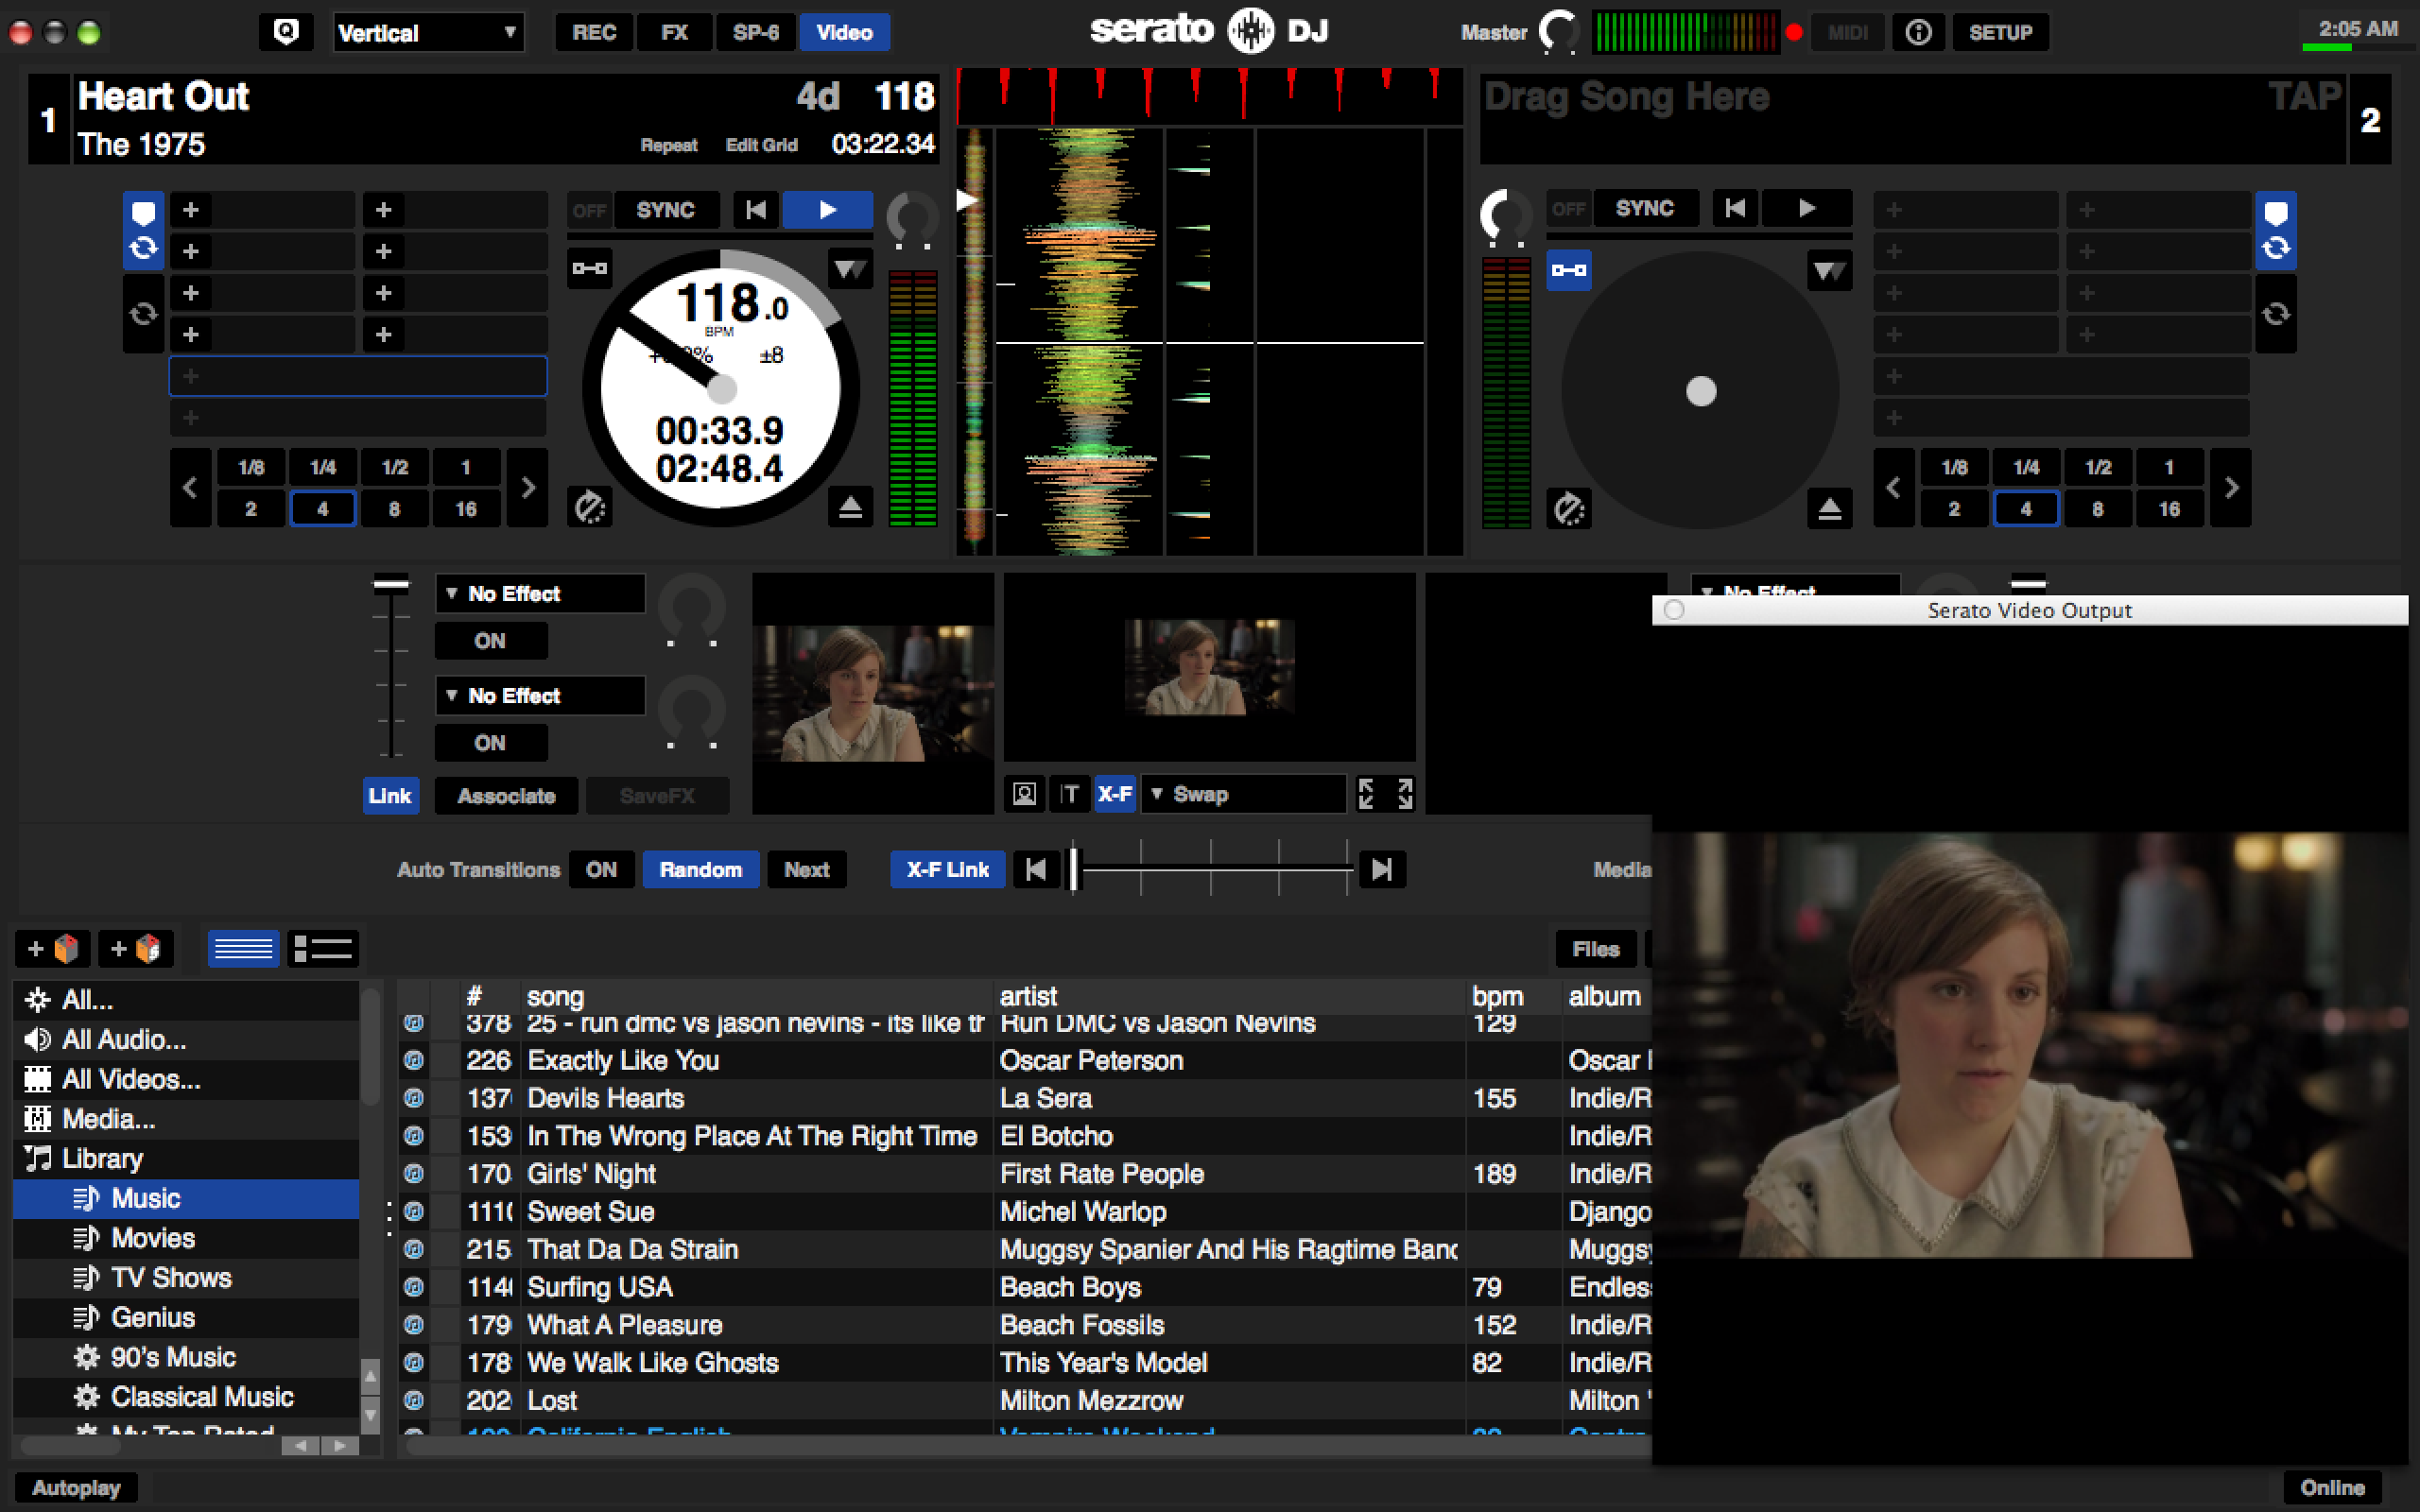 Serato Video appears in the middle of the main interface, so there's no switching between screens and other confusing workflow tweaks: It's still Serato through and through.